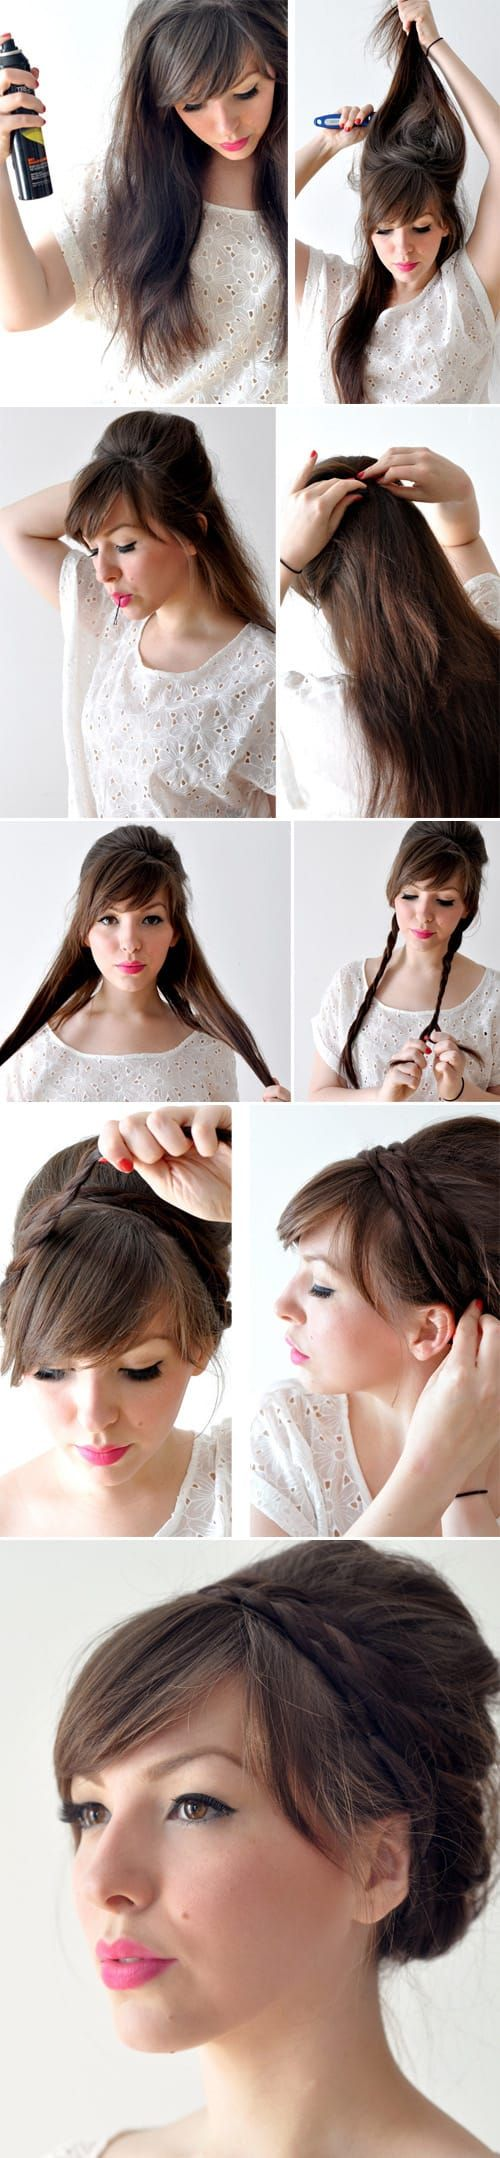 Braided Updo Tutorial Courtesy of Keiko Lynn. Pretty adorable if you've got some grown-out bangs that are ready for side-sweeping. I not only want to try this hairstyle, but this makeup look as well.